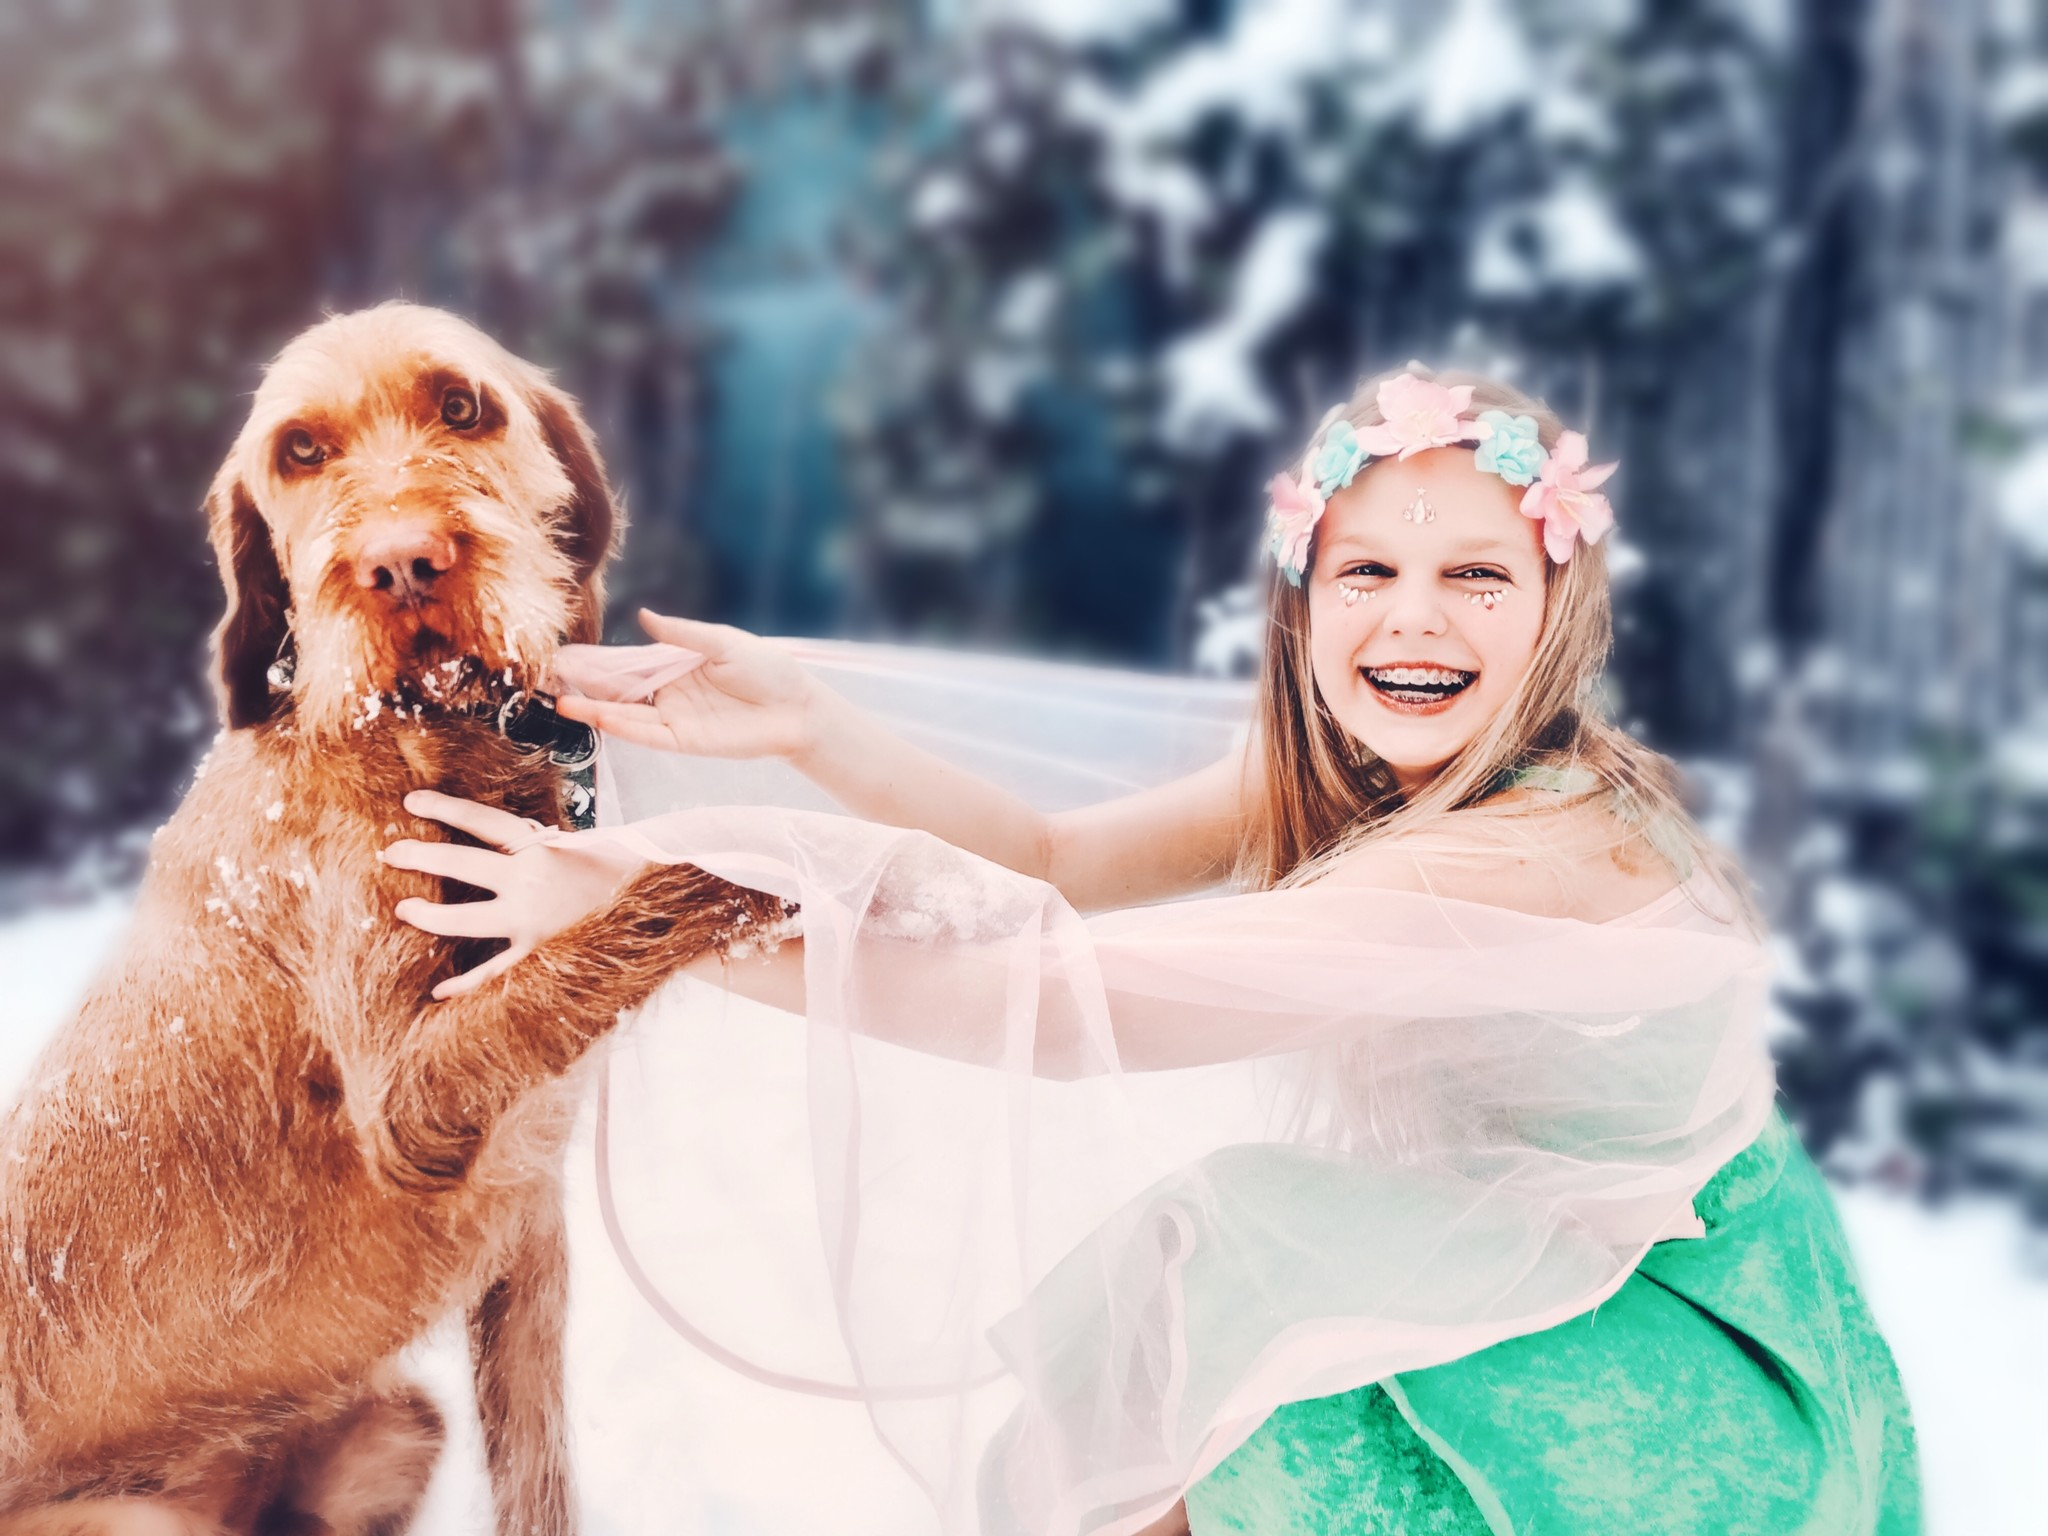 Kids and dogs fairytale wonderland